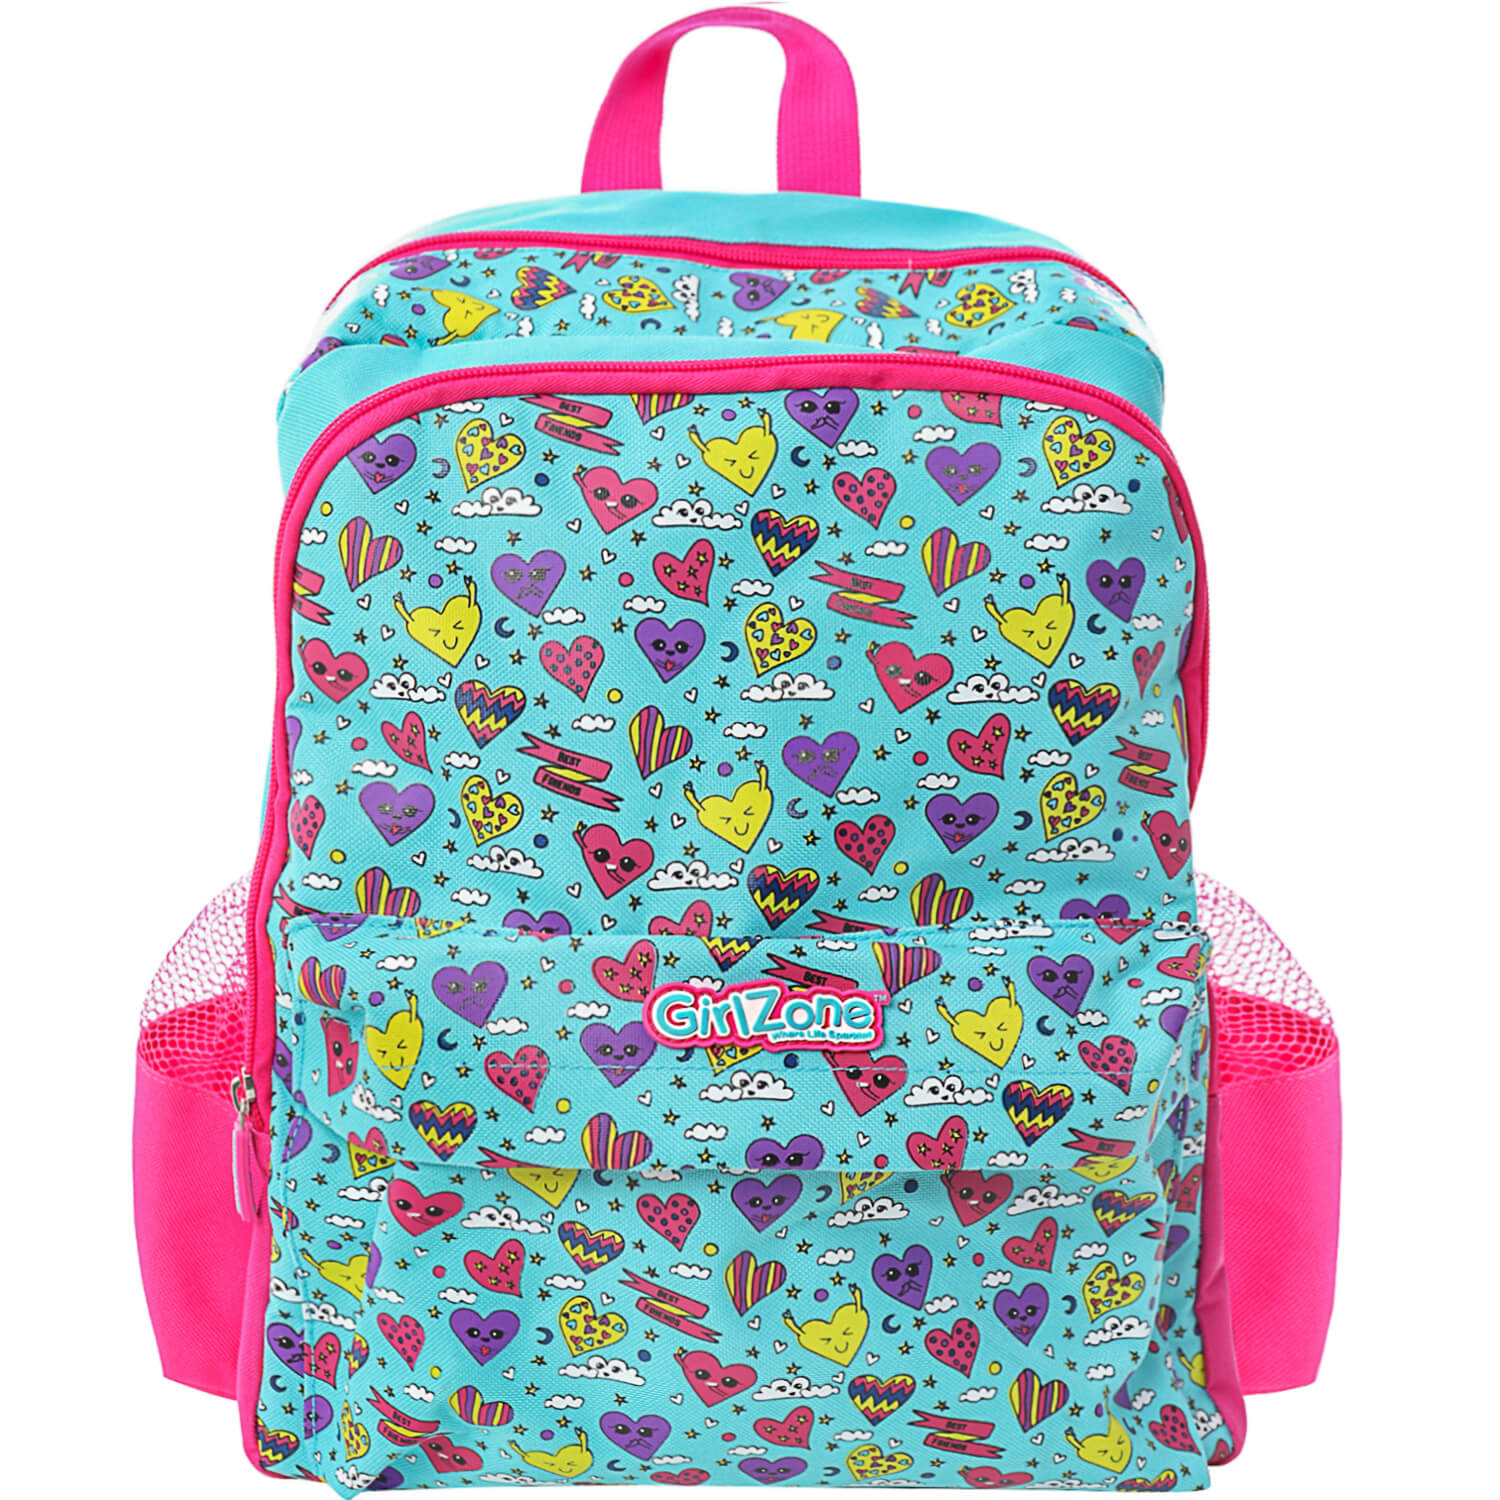 GirlZone Blue Backpack